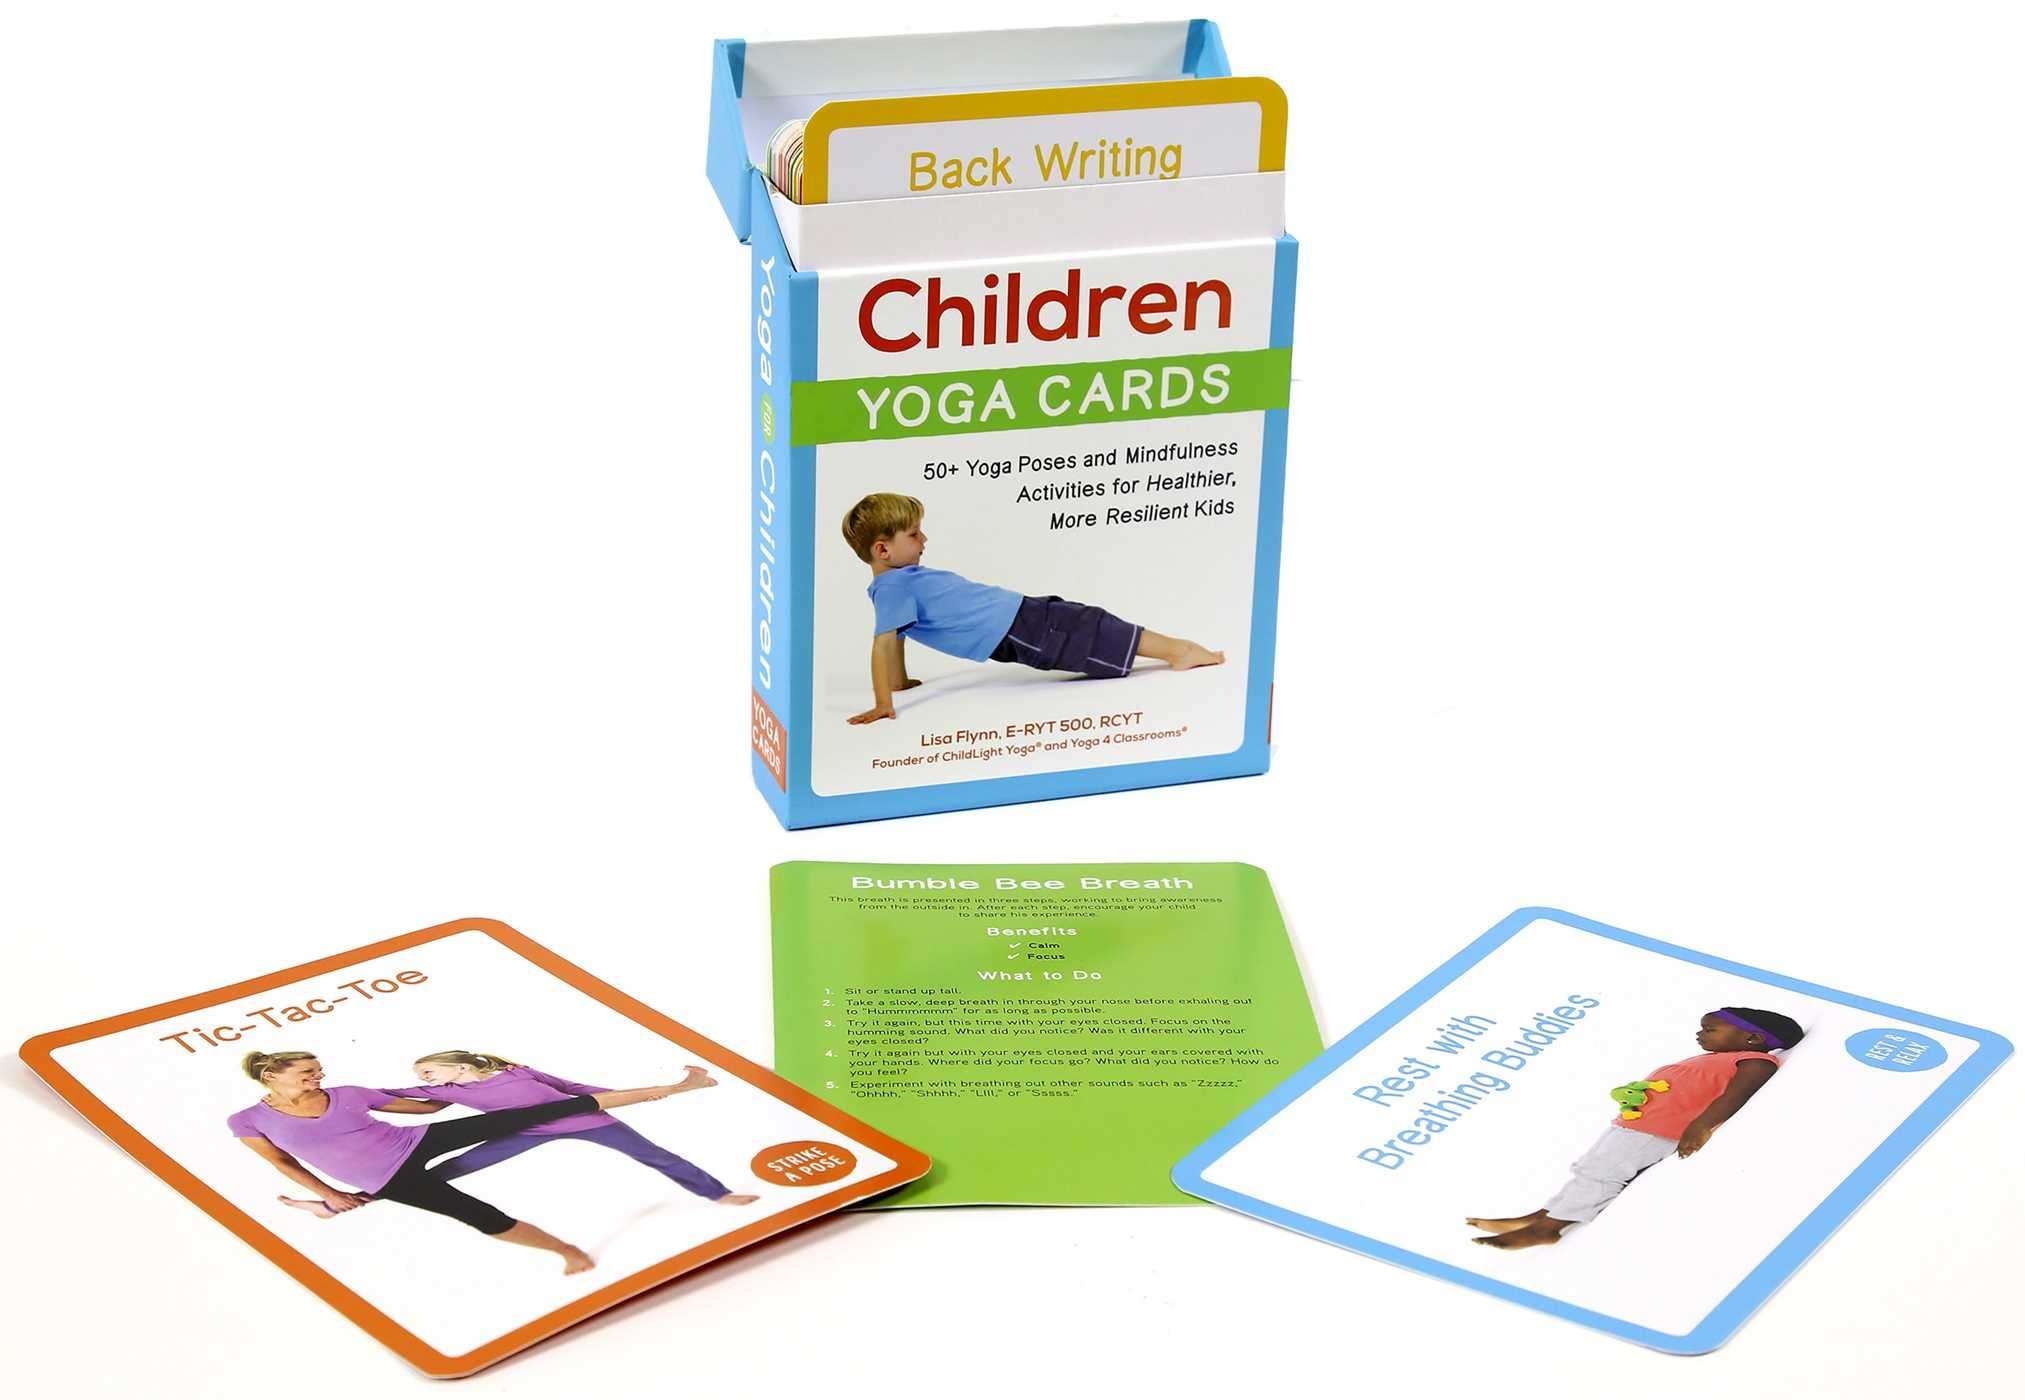 Yoga for children yoga cards 9781507208236.in07